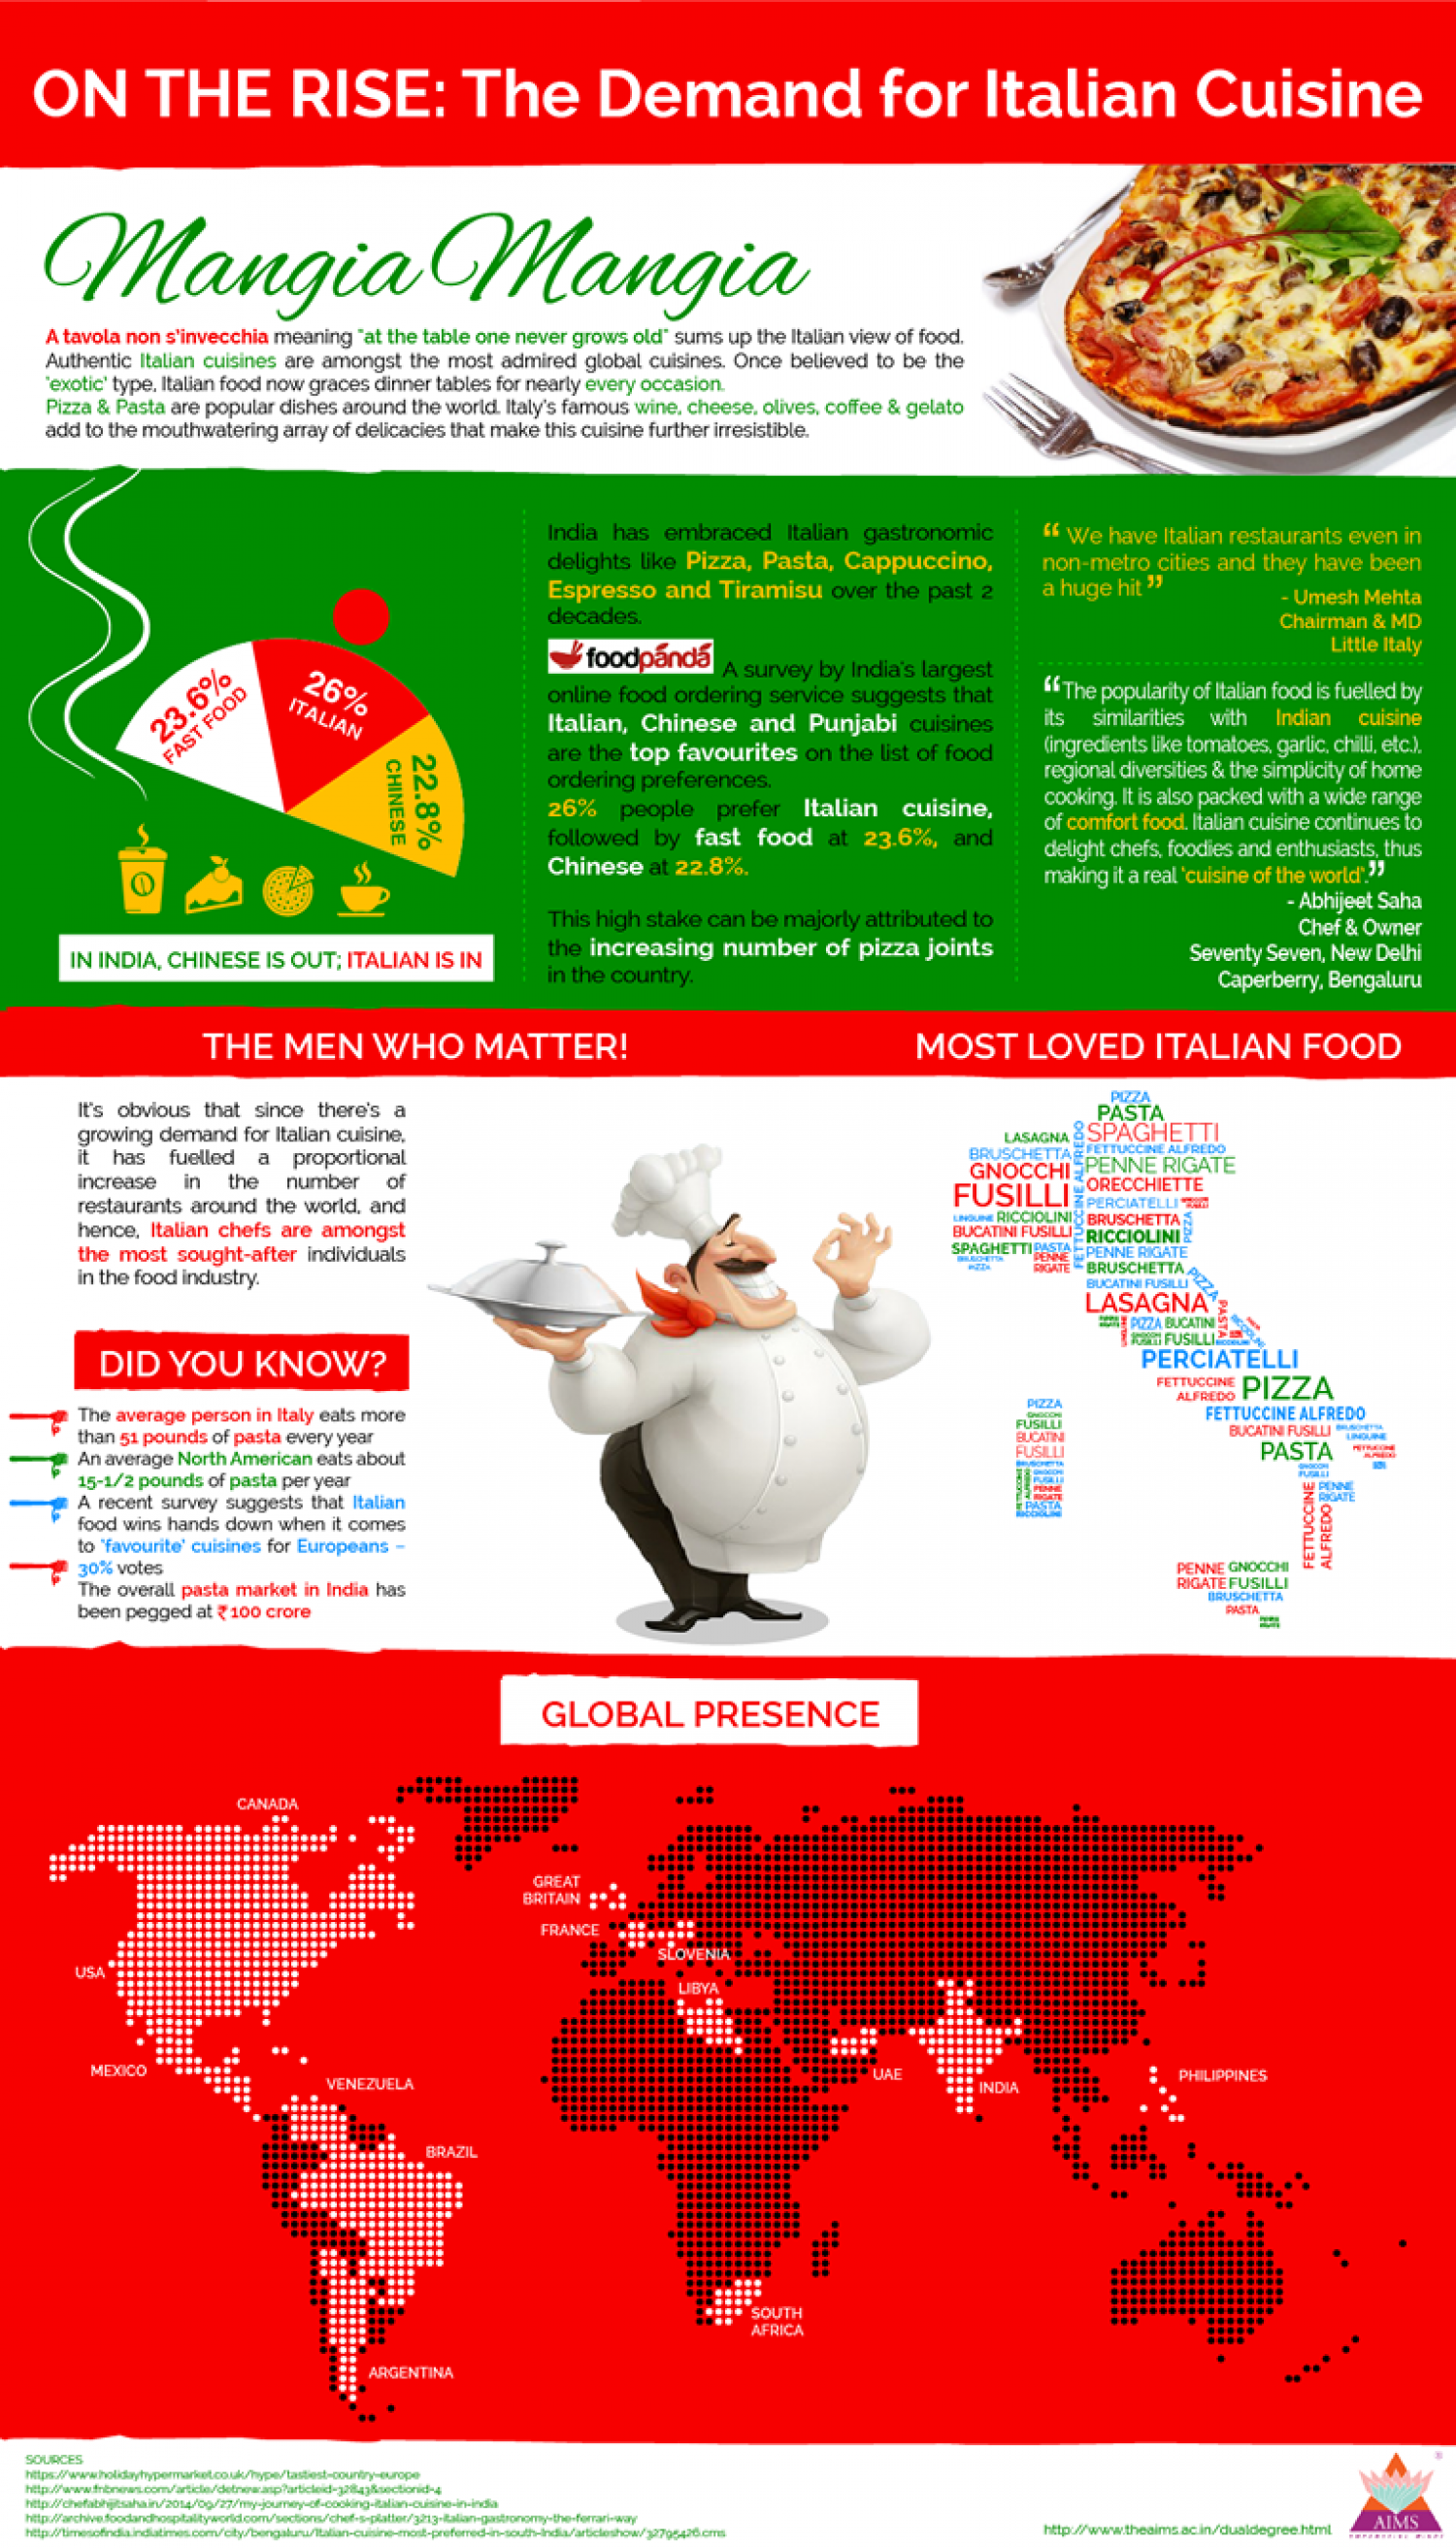 ON THE RISE: The Demand for Italian Cusine Infographic